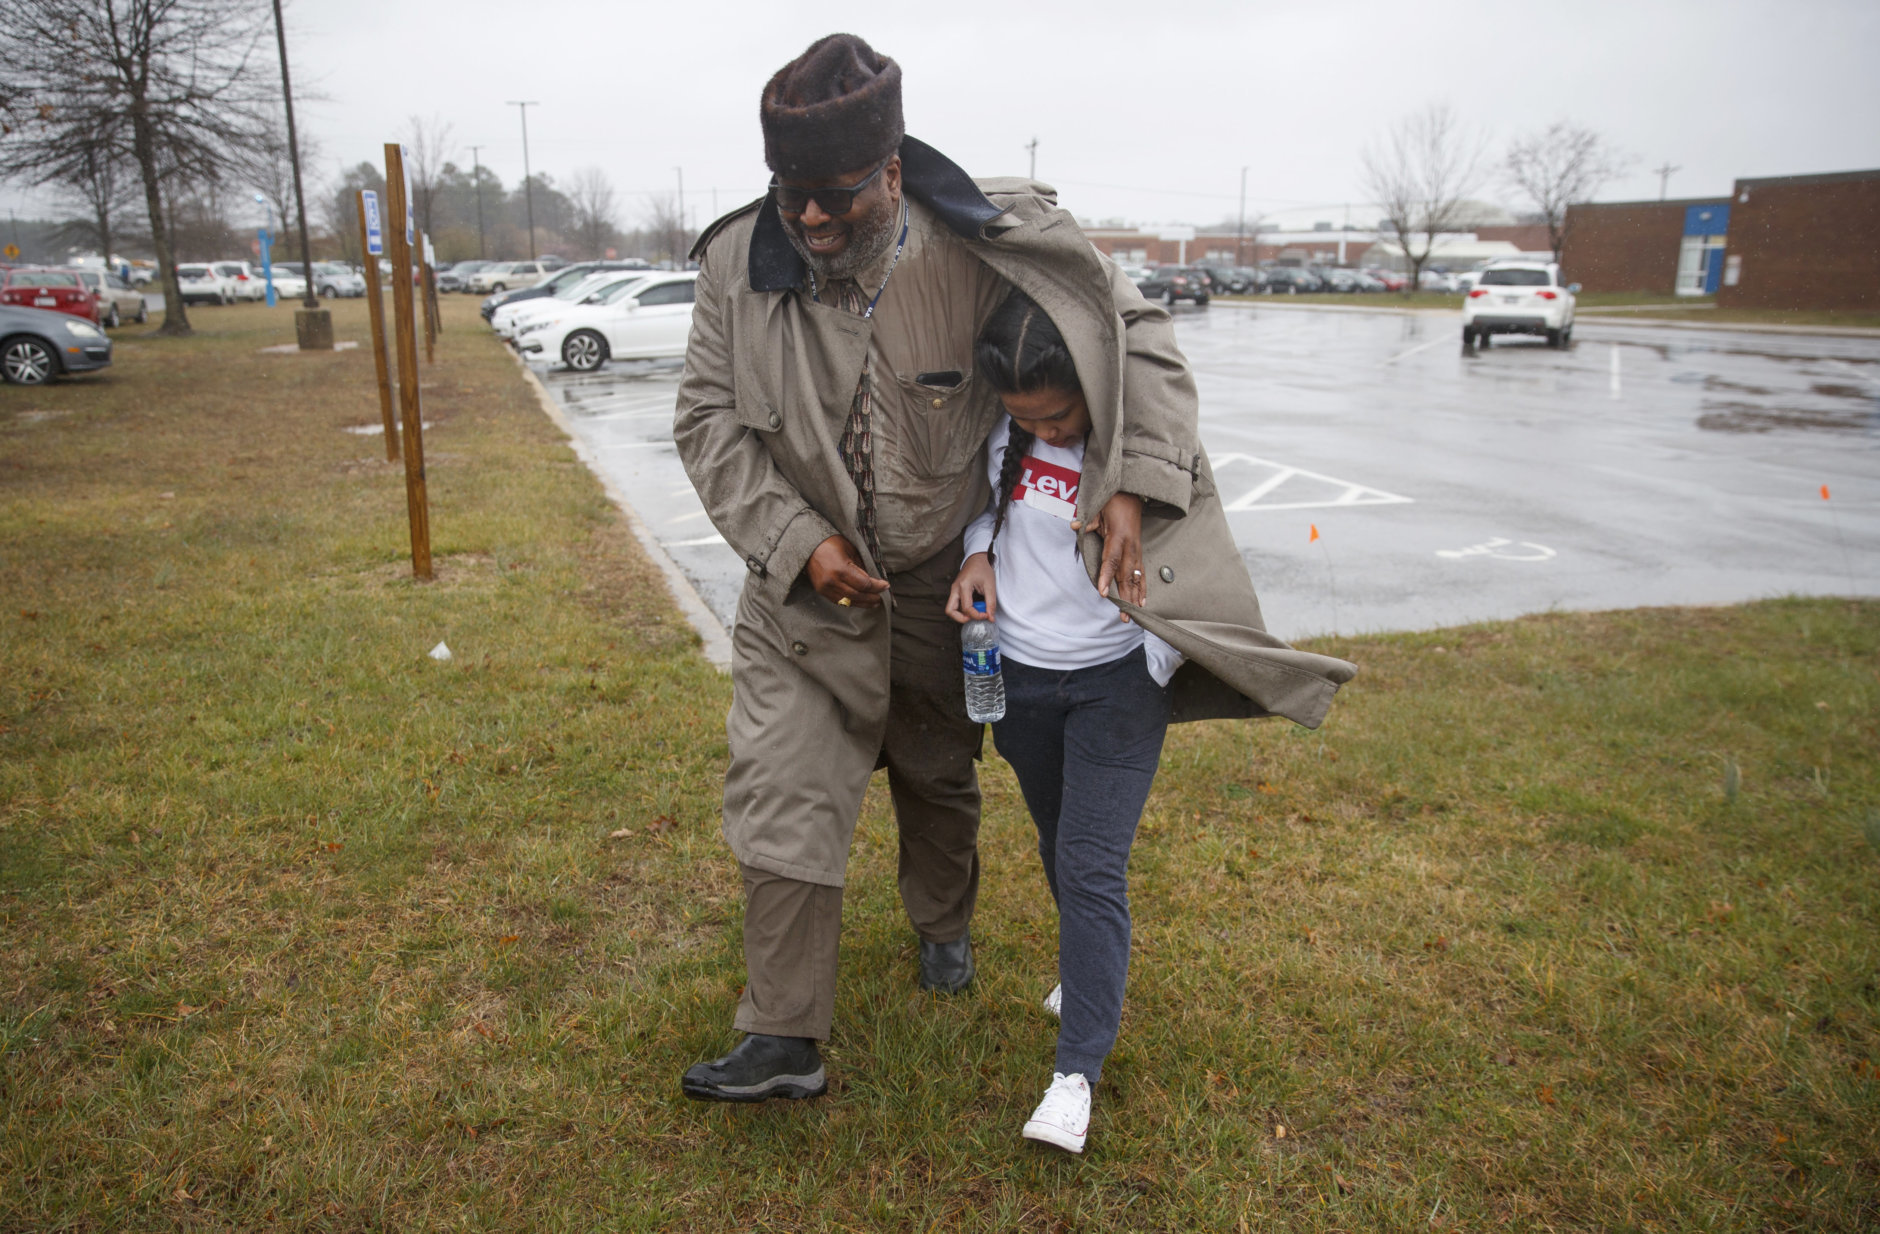 A father shelters his daughter, a student from Great Mills High School, from the rain as they picks her up from Leonardtown High School in Leonardtown, Md., Tuesday, March 20, 2018.  A student with a handgun shot two classmates inside his Maryland high school before he was fatally wounded during a confrontation with a school resource officer, a sheriff said. (AP Photo/Carolyn Kaster)